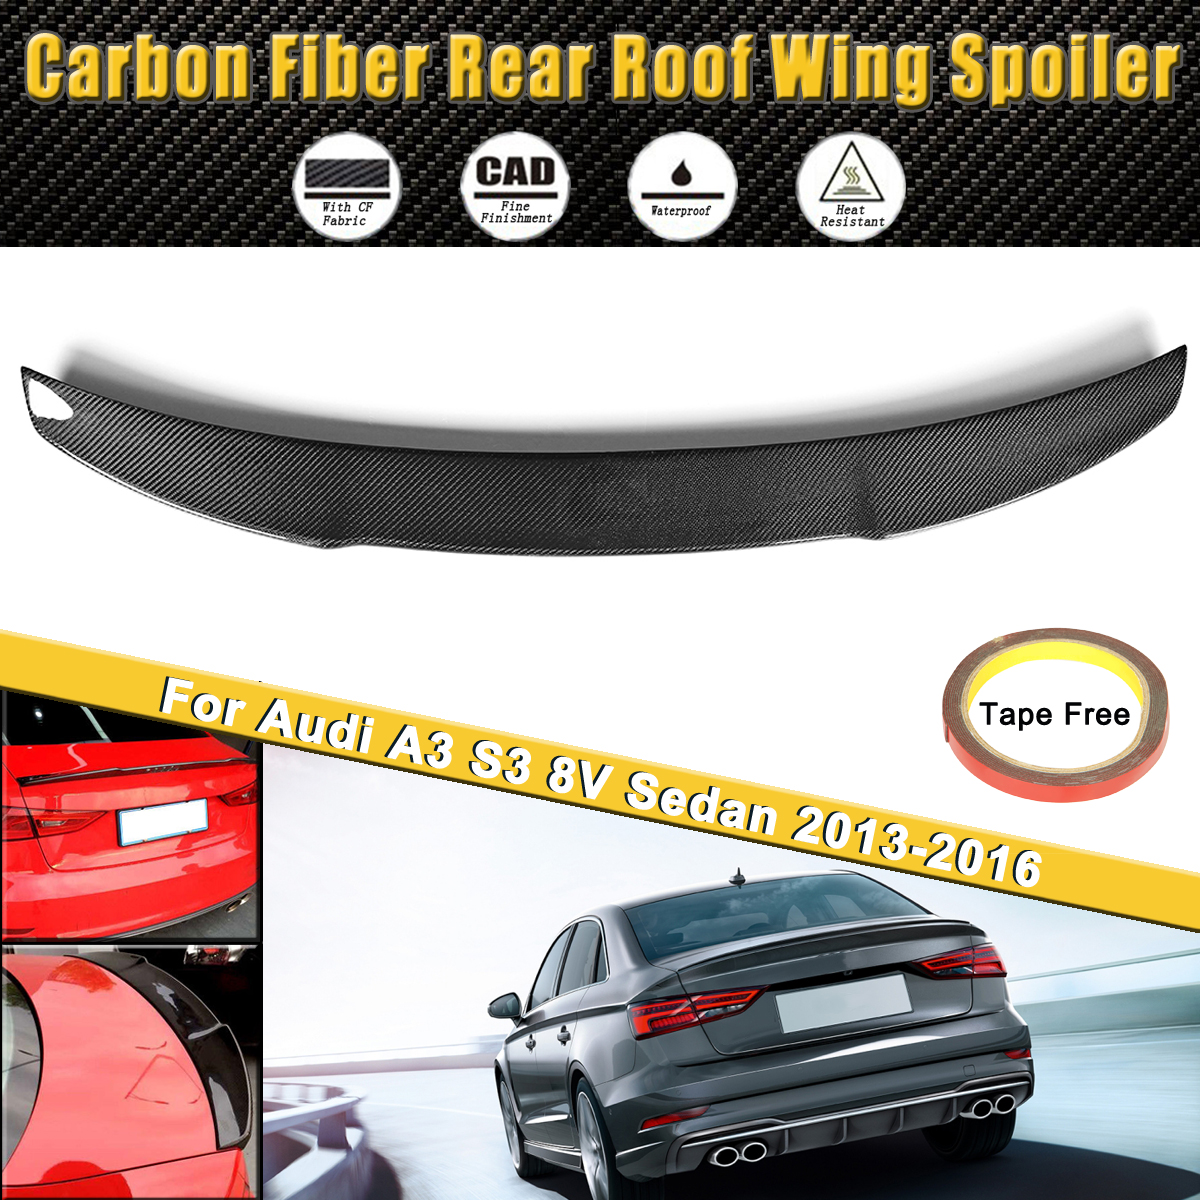 Full Real Carbon Fiber Auto Rear Trunk Lip Roof Wing Spoiler Fit For Audi A3 S3 8V Sedan 2013 2016